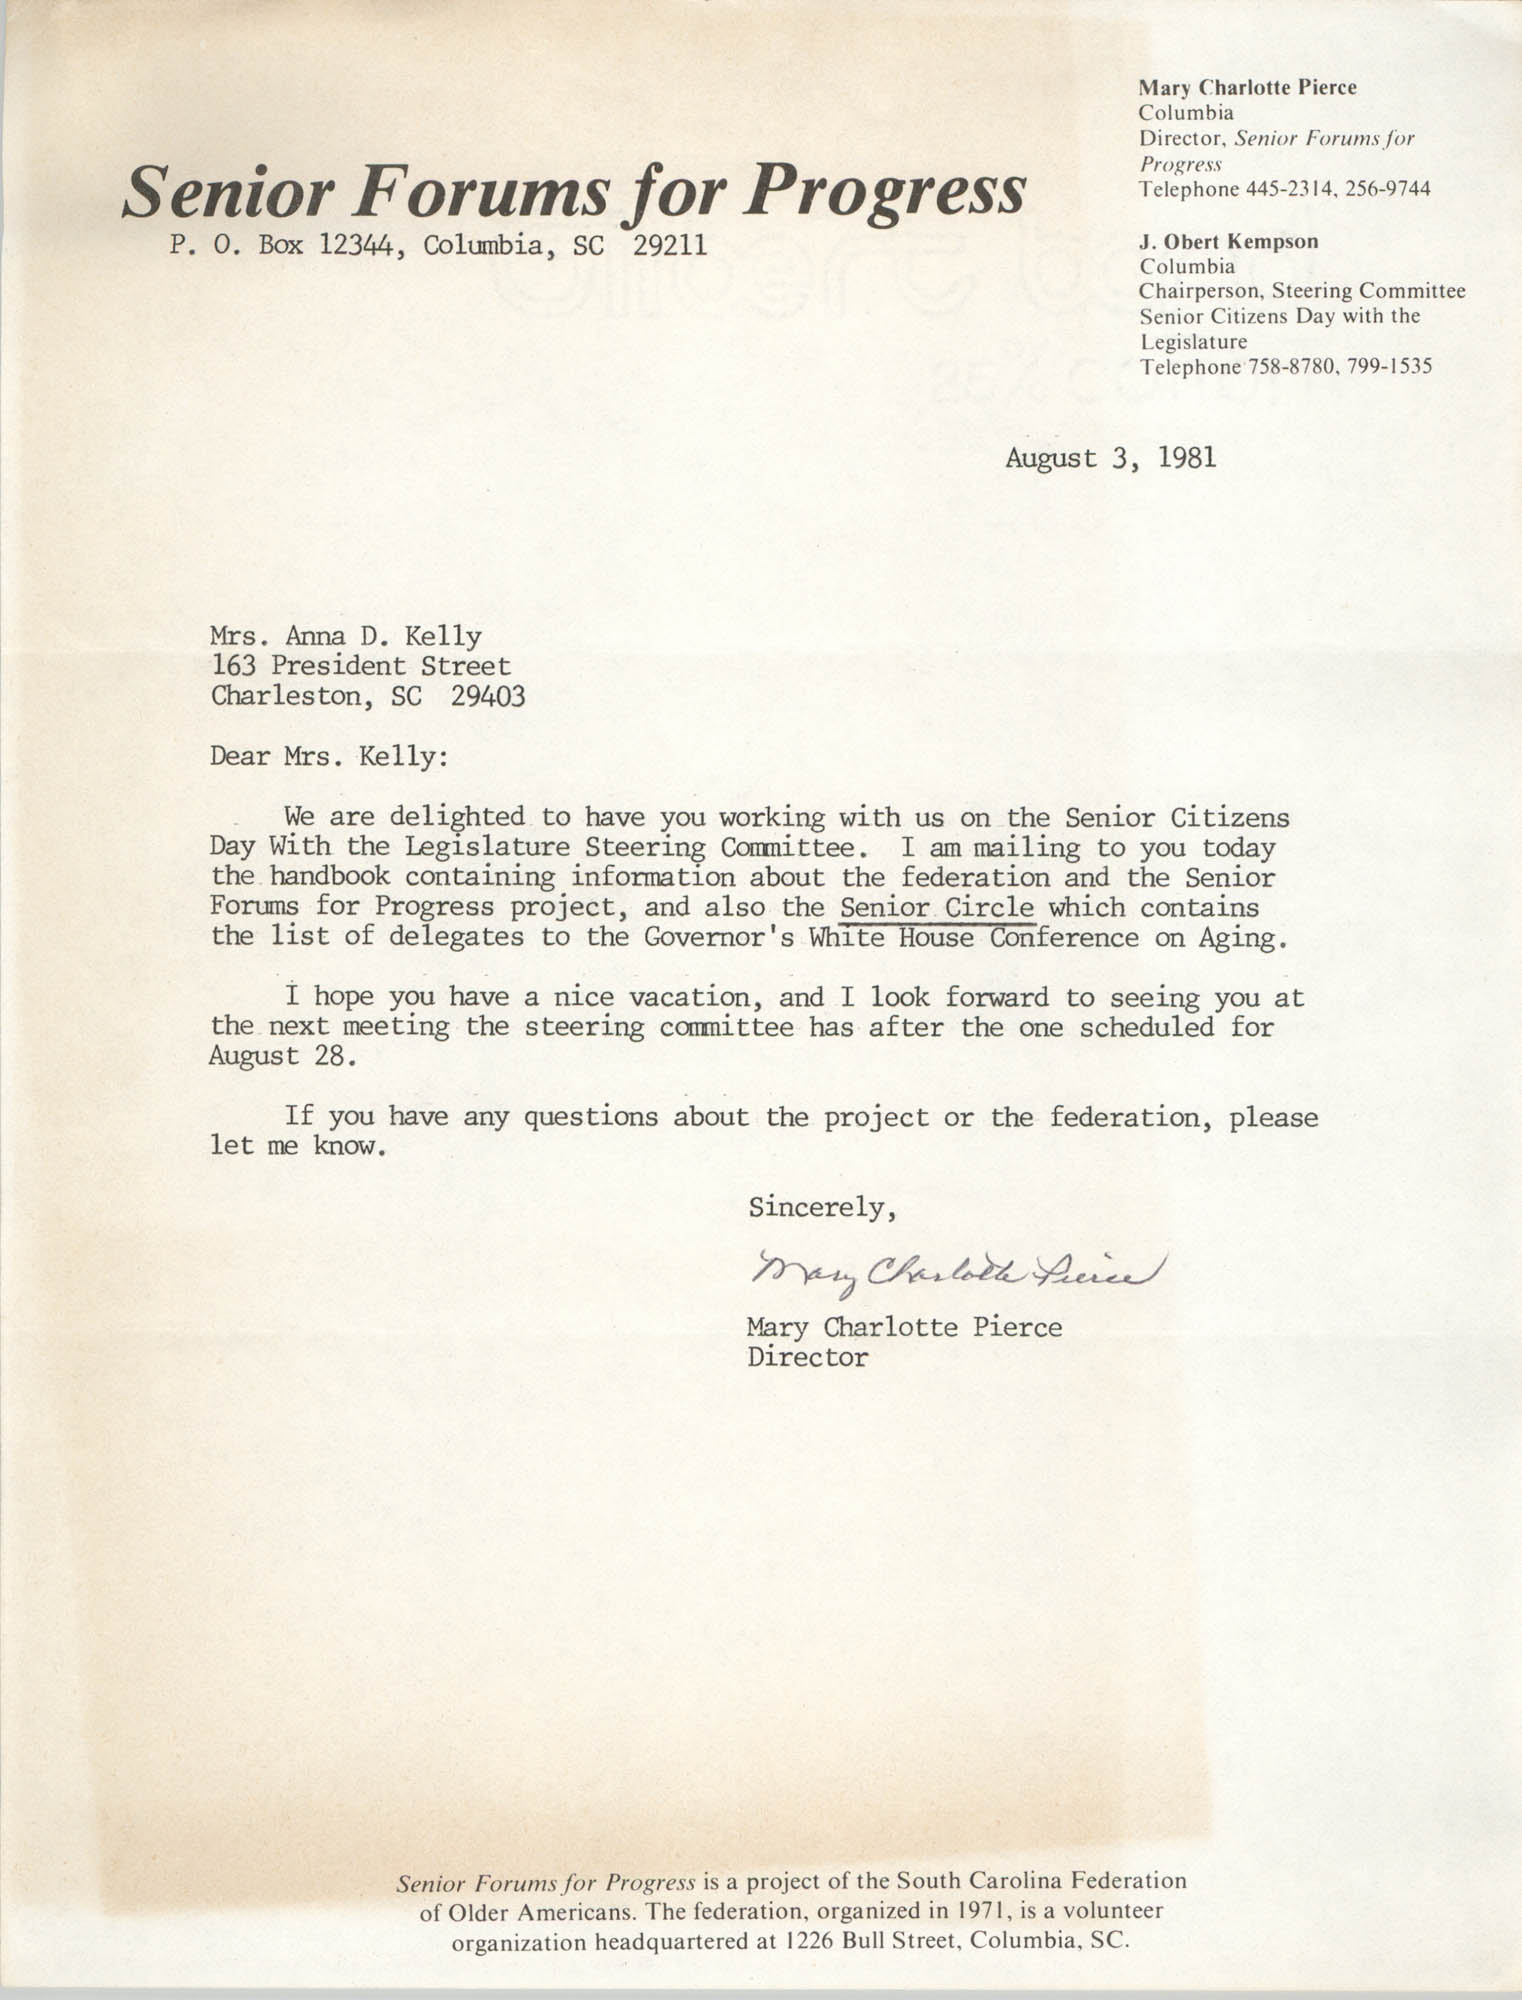 Letter from Mary Charlotte Pierce to Anna D. Kelly, August 3, 1981